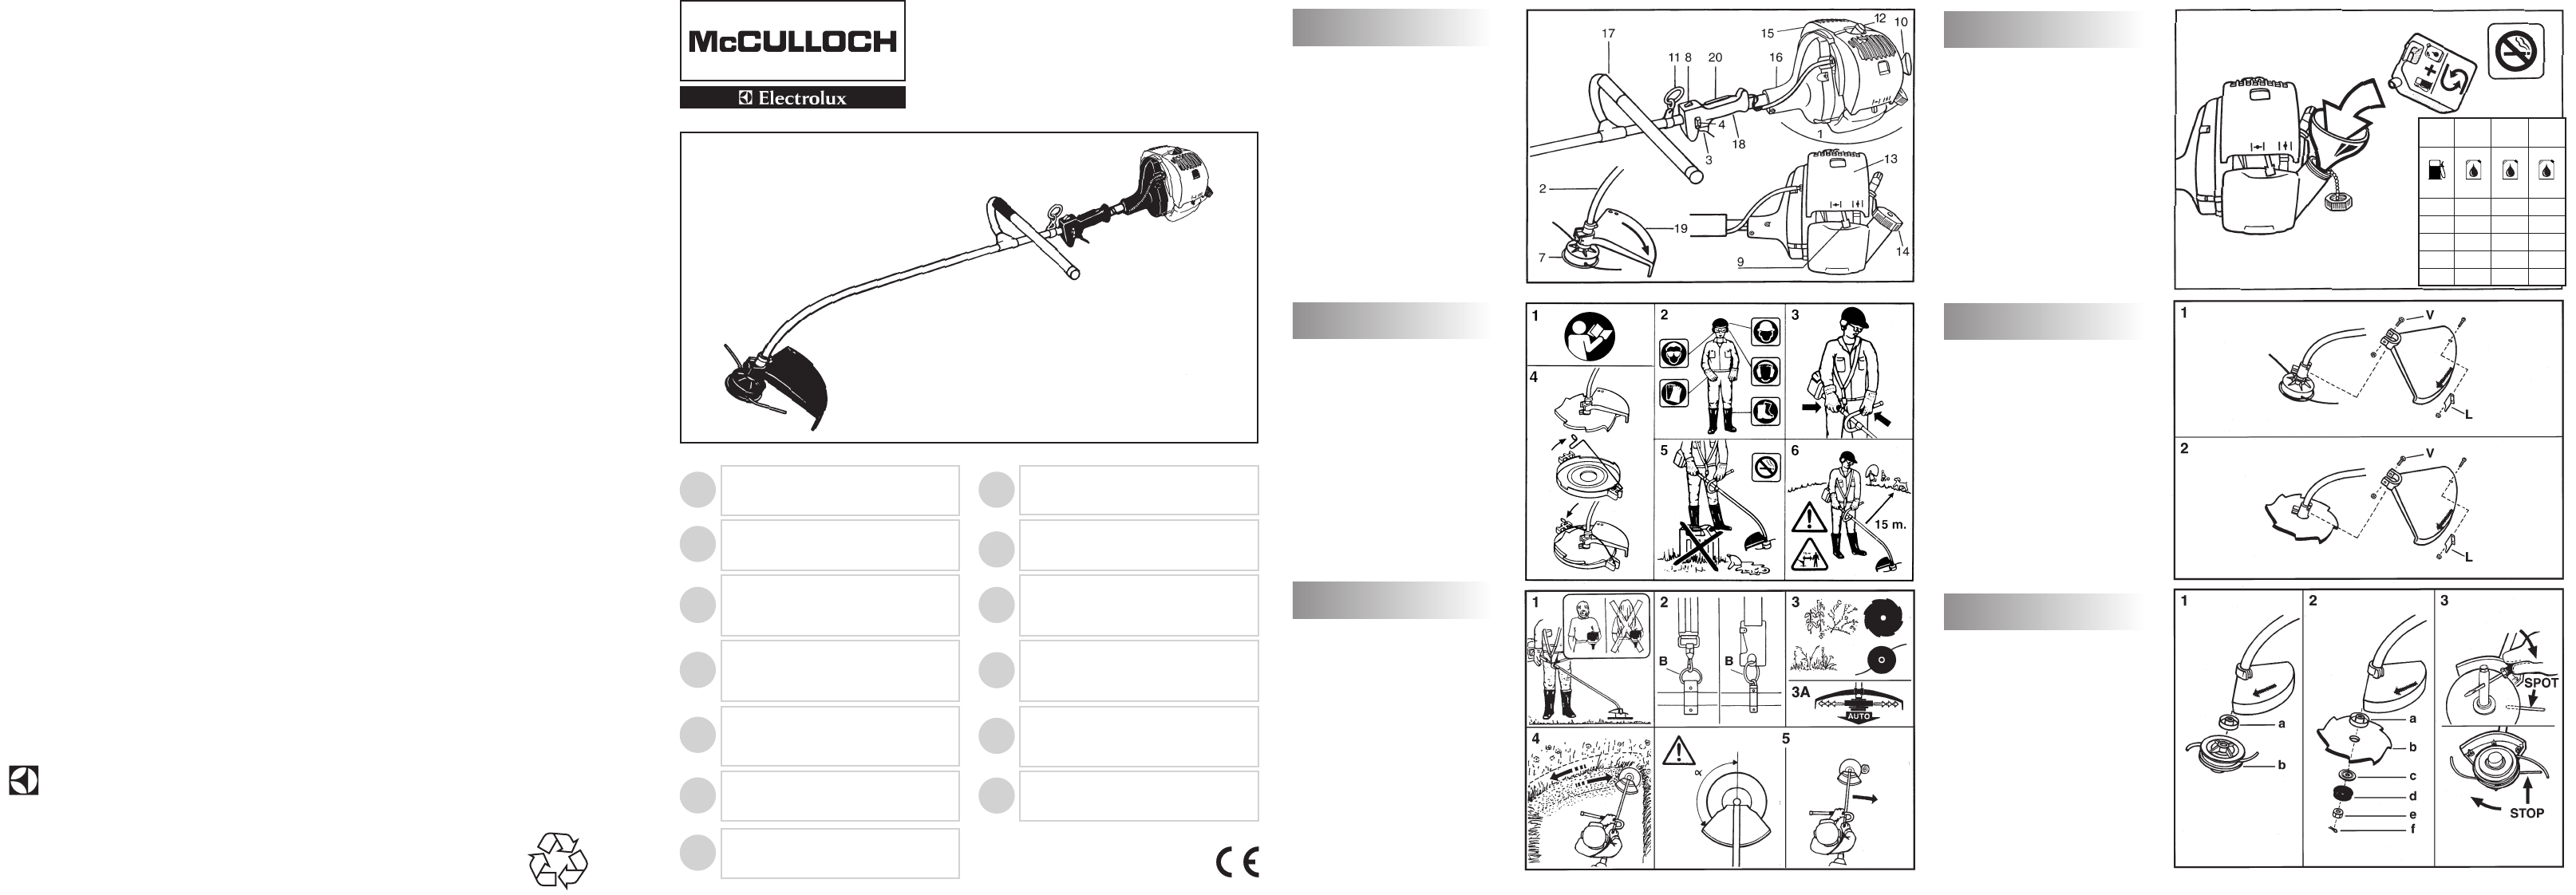 McCulloch Brush Cutter 246/25 cc User Guide